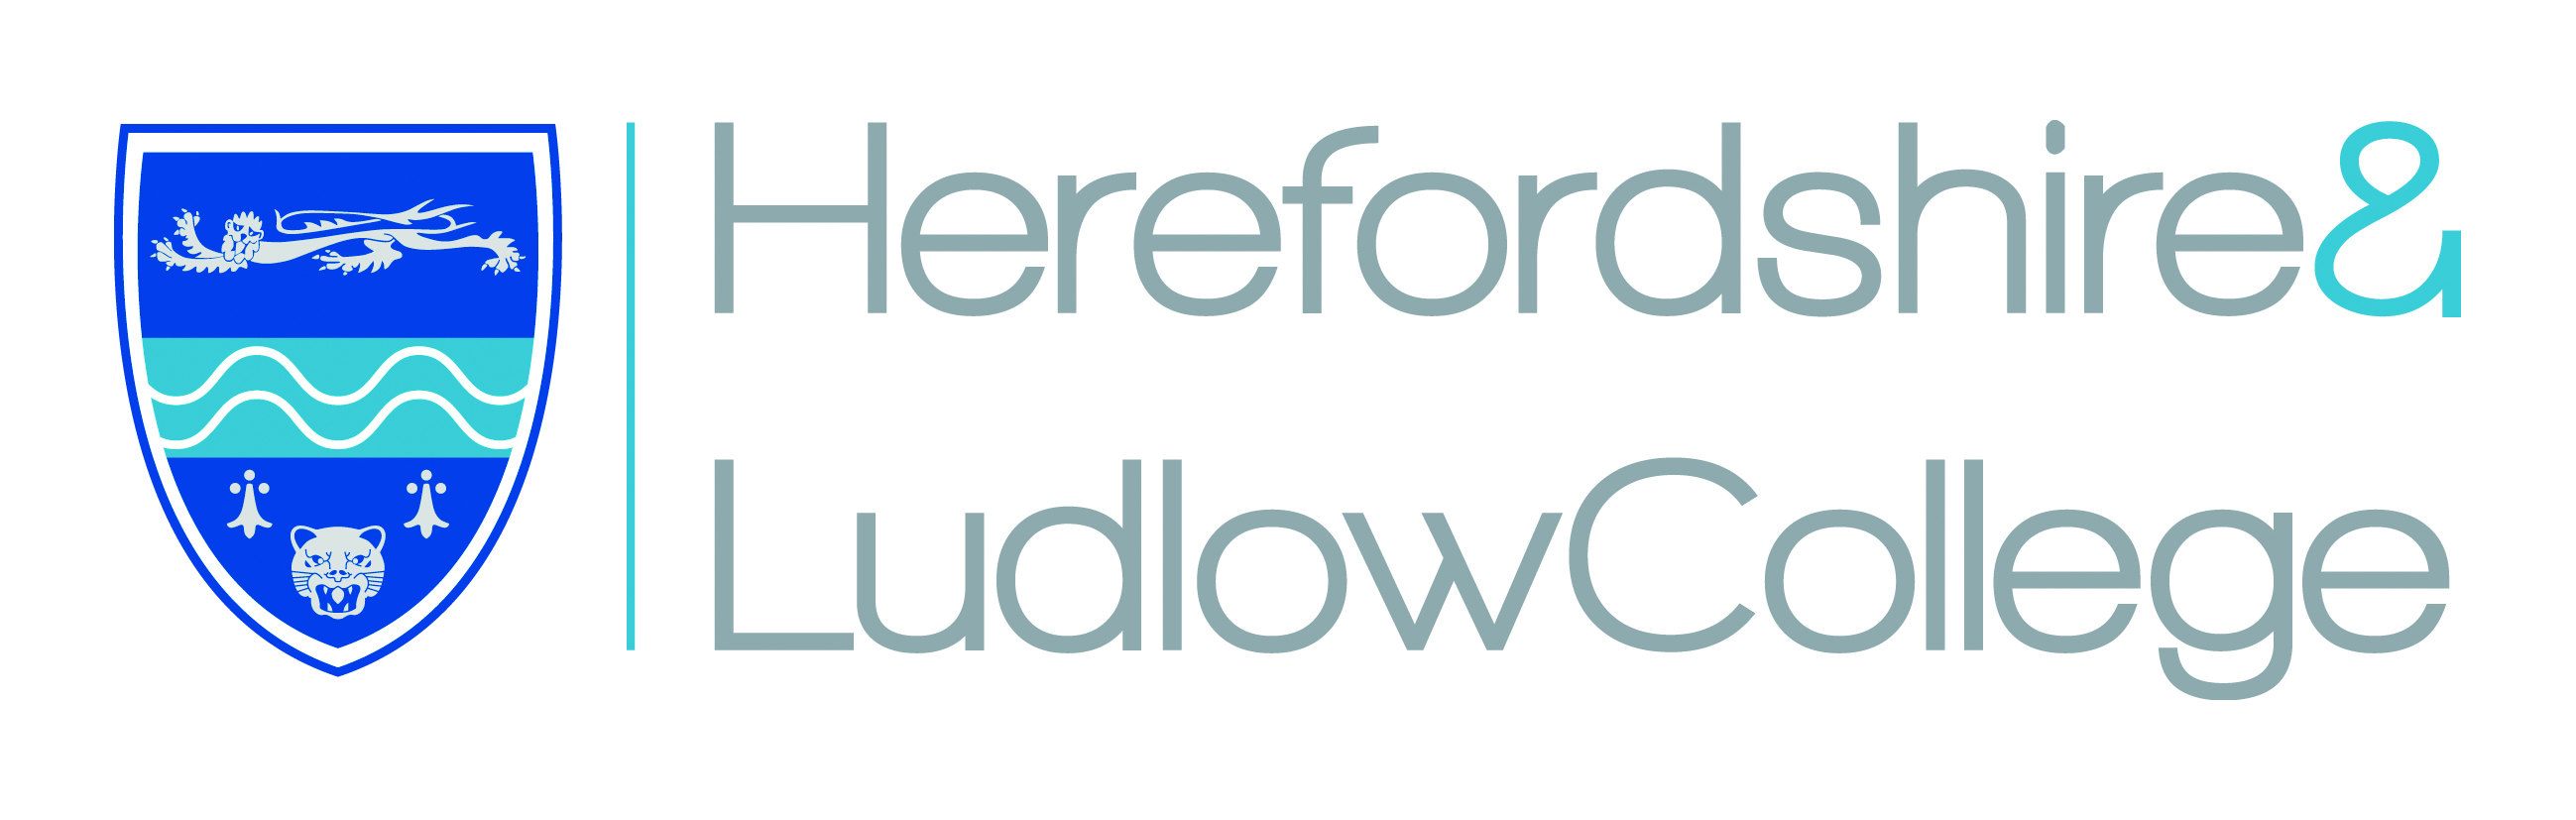 Herefordshire and Ludlow College